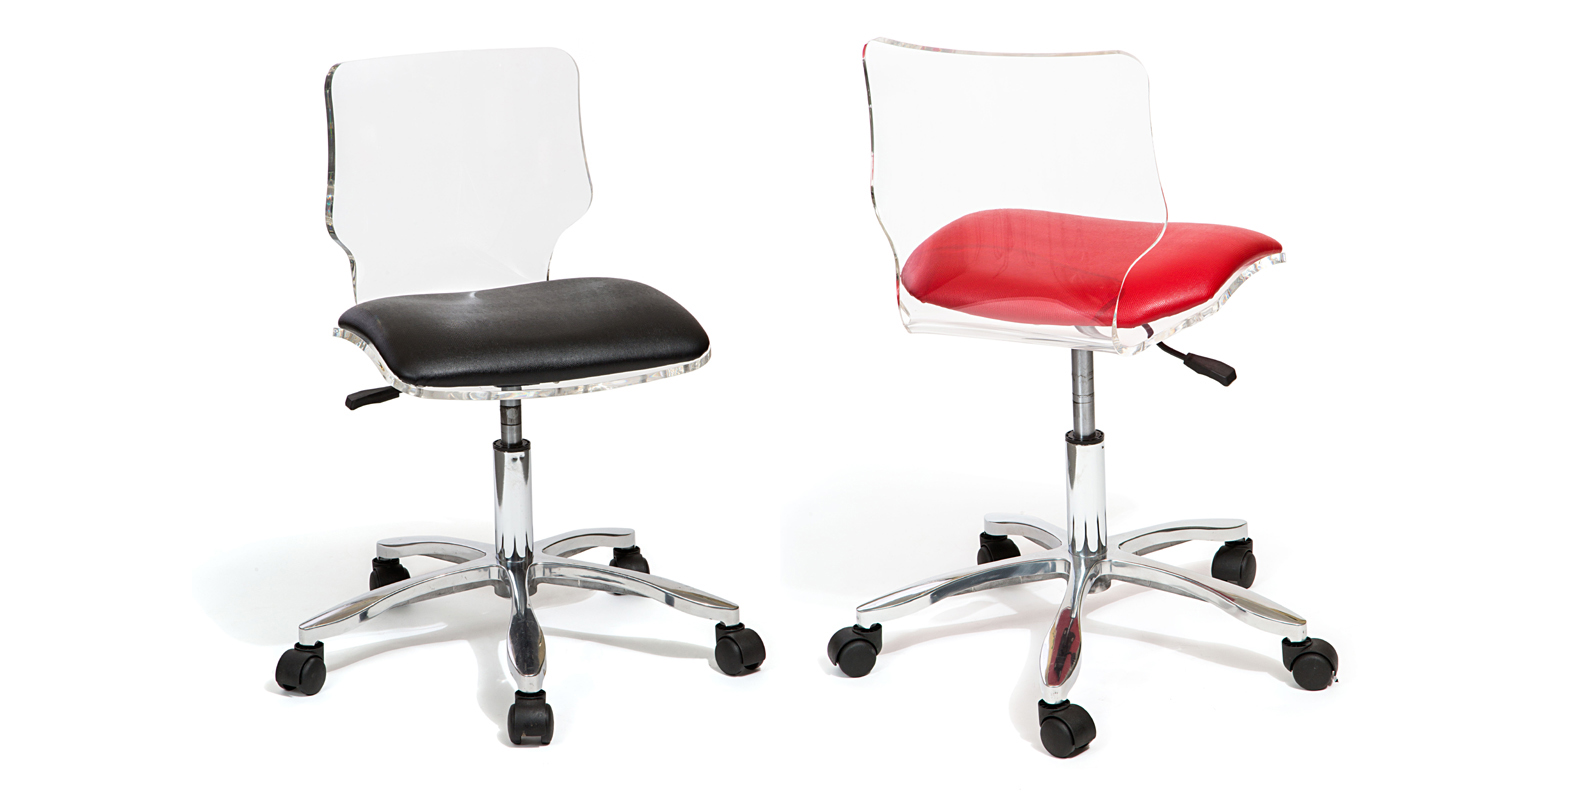 Acrylic Desk Chairs IBR